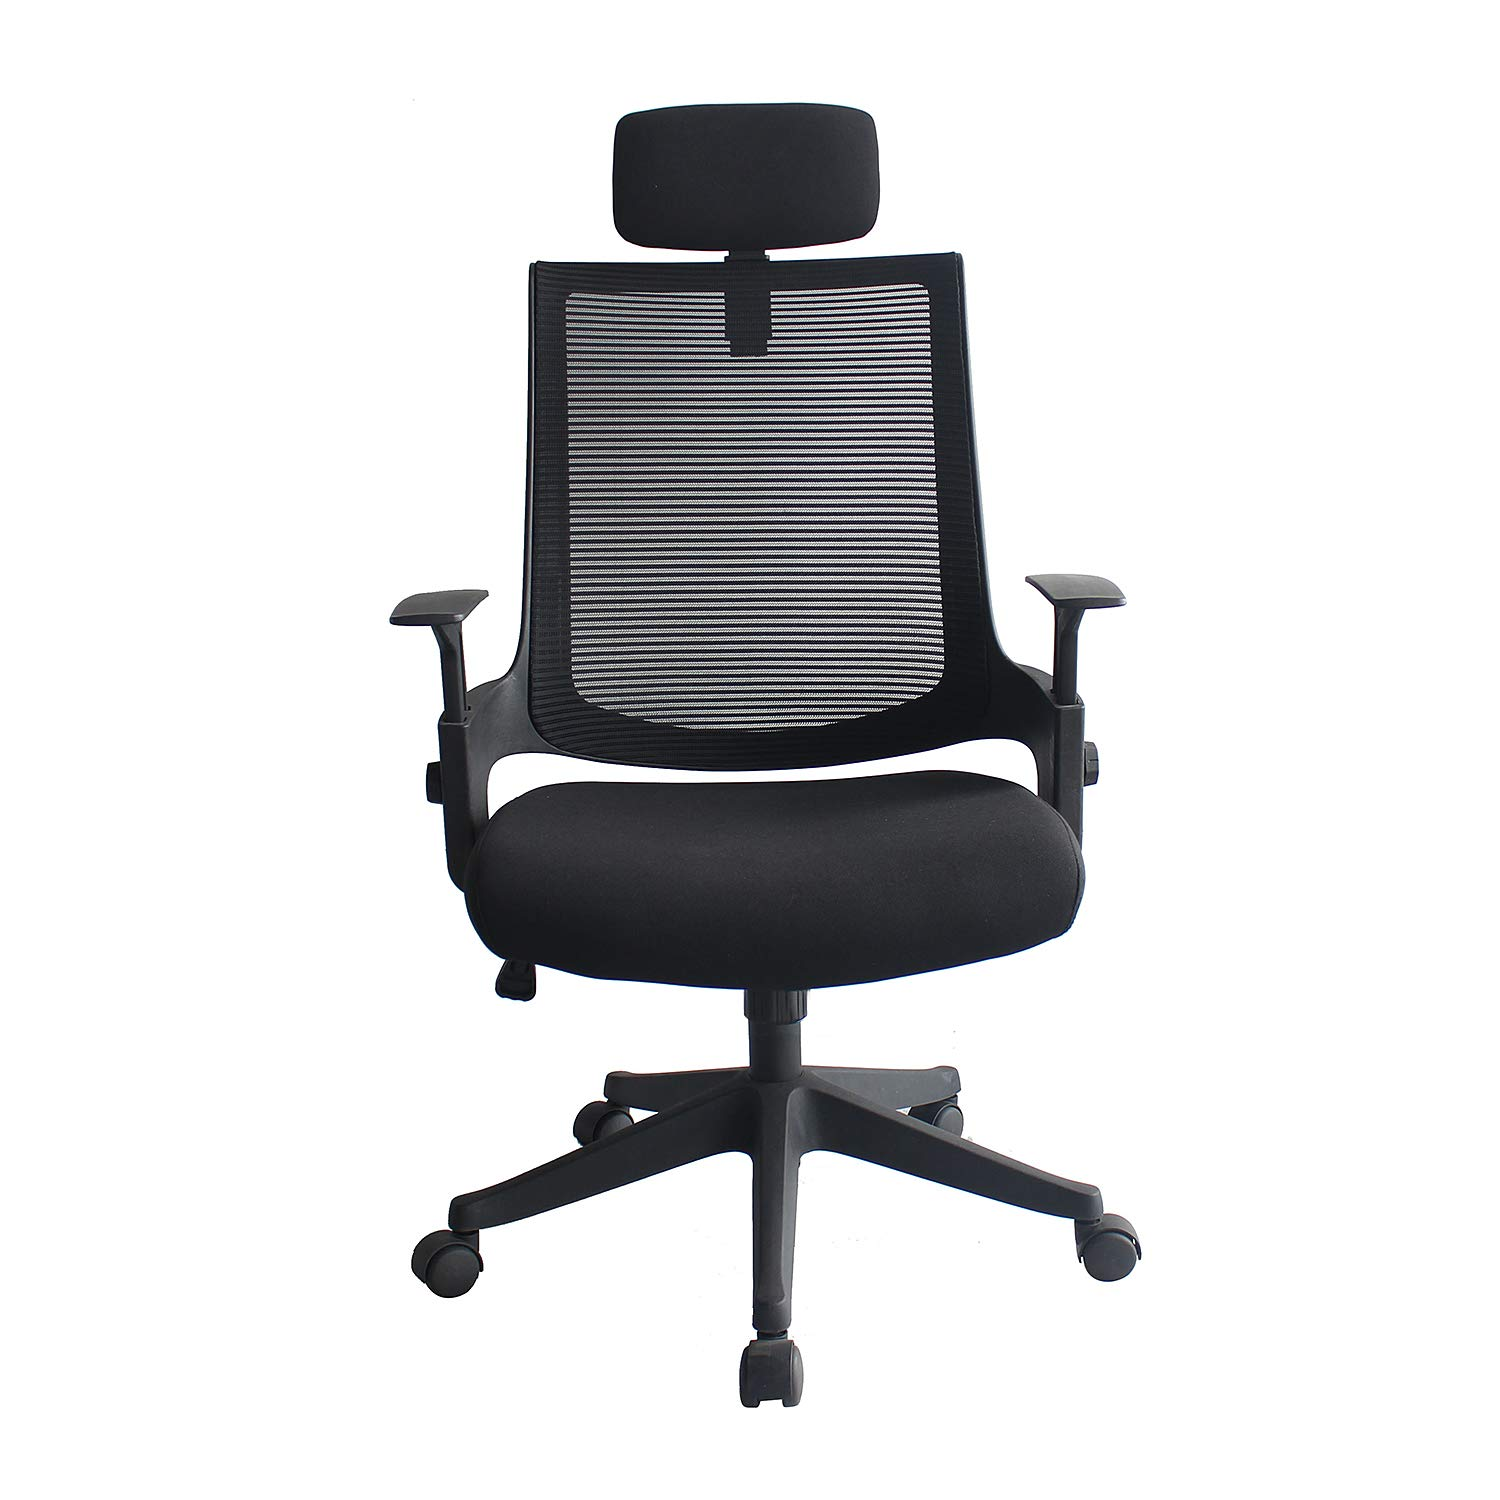 Ergonomic Office Chair High Back Mesh Chair with Adjustable Headrest and Armrests, Tilt Lock, Lumbar Support Mesh Desk Executive Office Chair (Black), $79.90 each